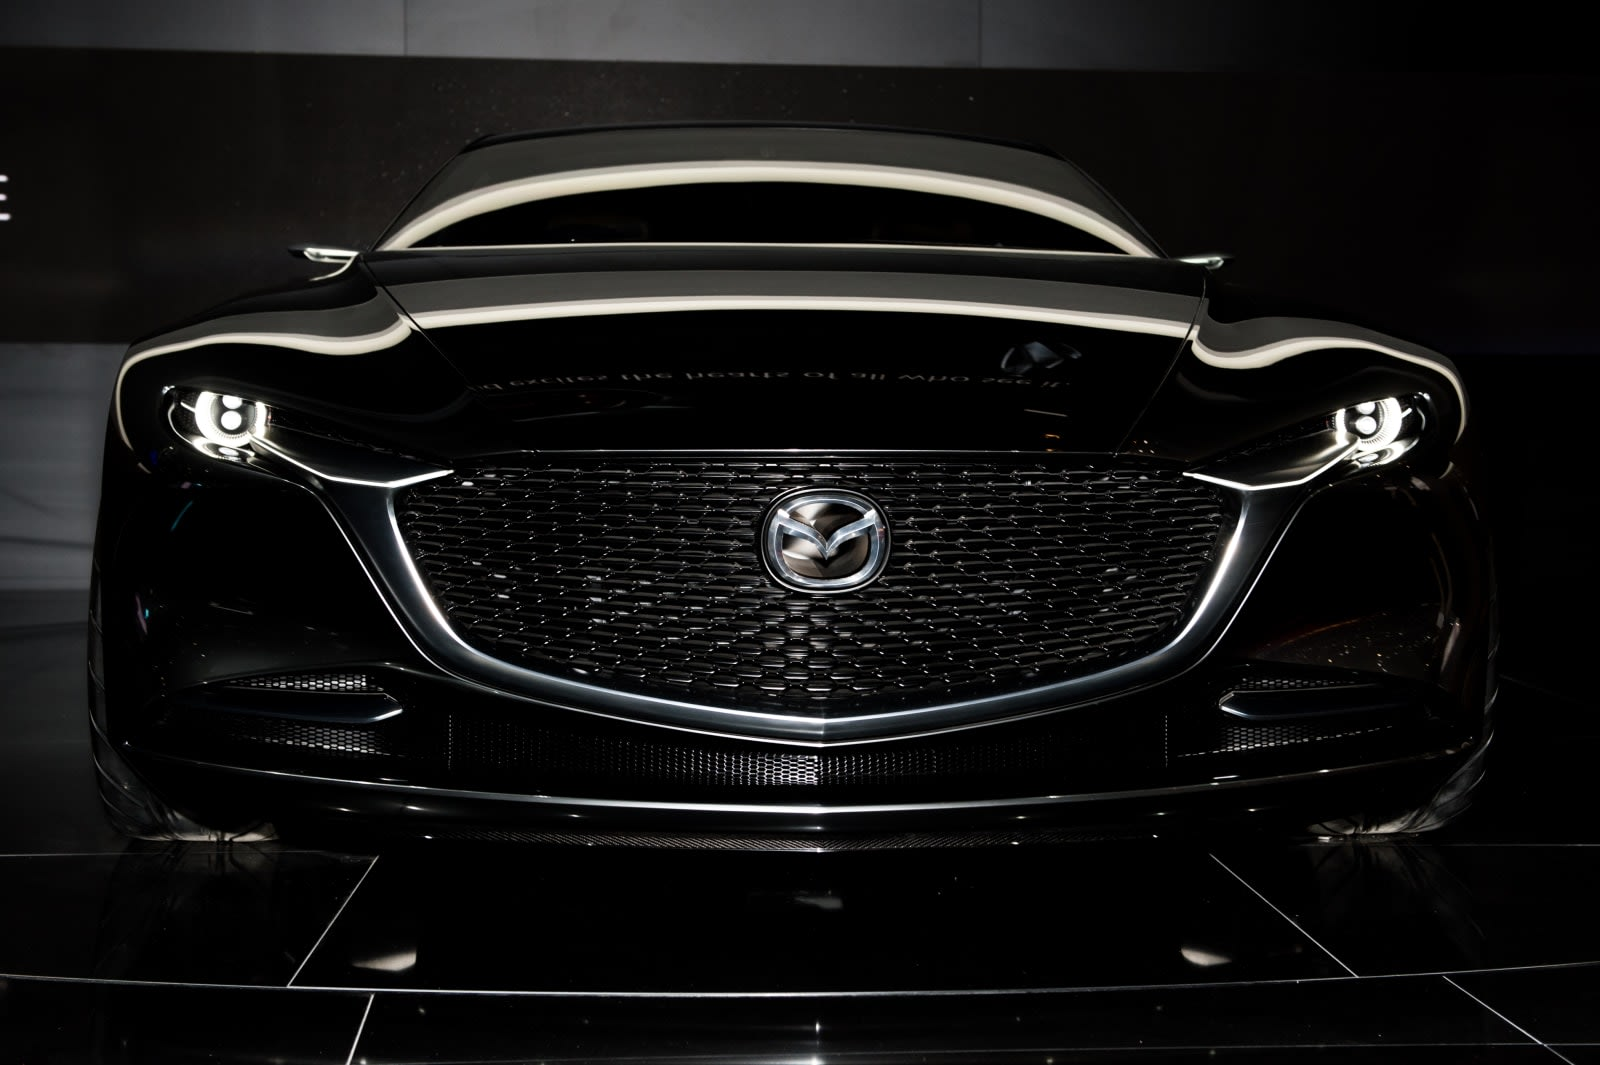 Mazda will offer an EV in 2020